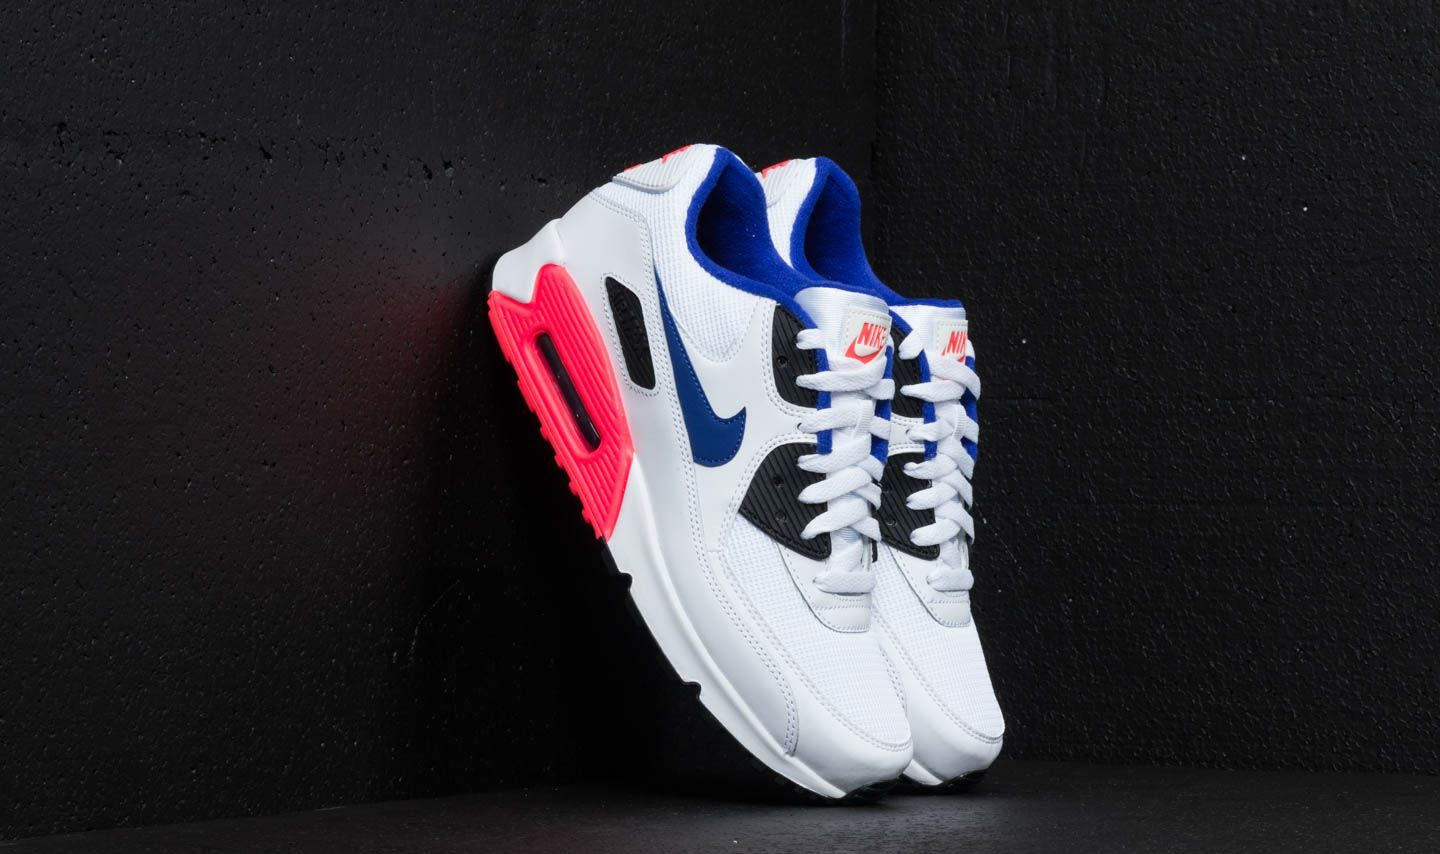 f1bcb85be8 Nike Air Max 90 Essential White/ Ultramarine/ Solar Red | Footshop